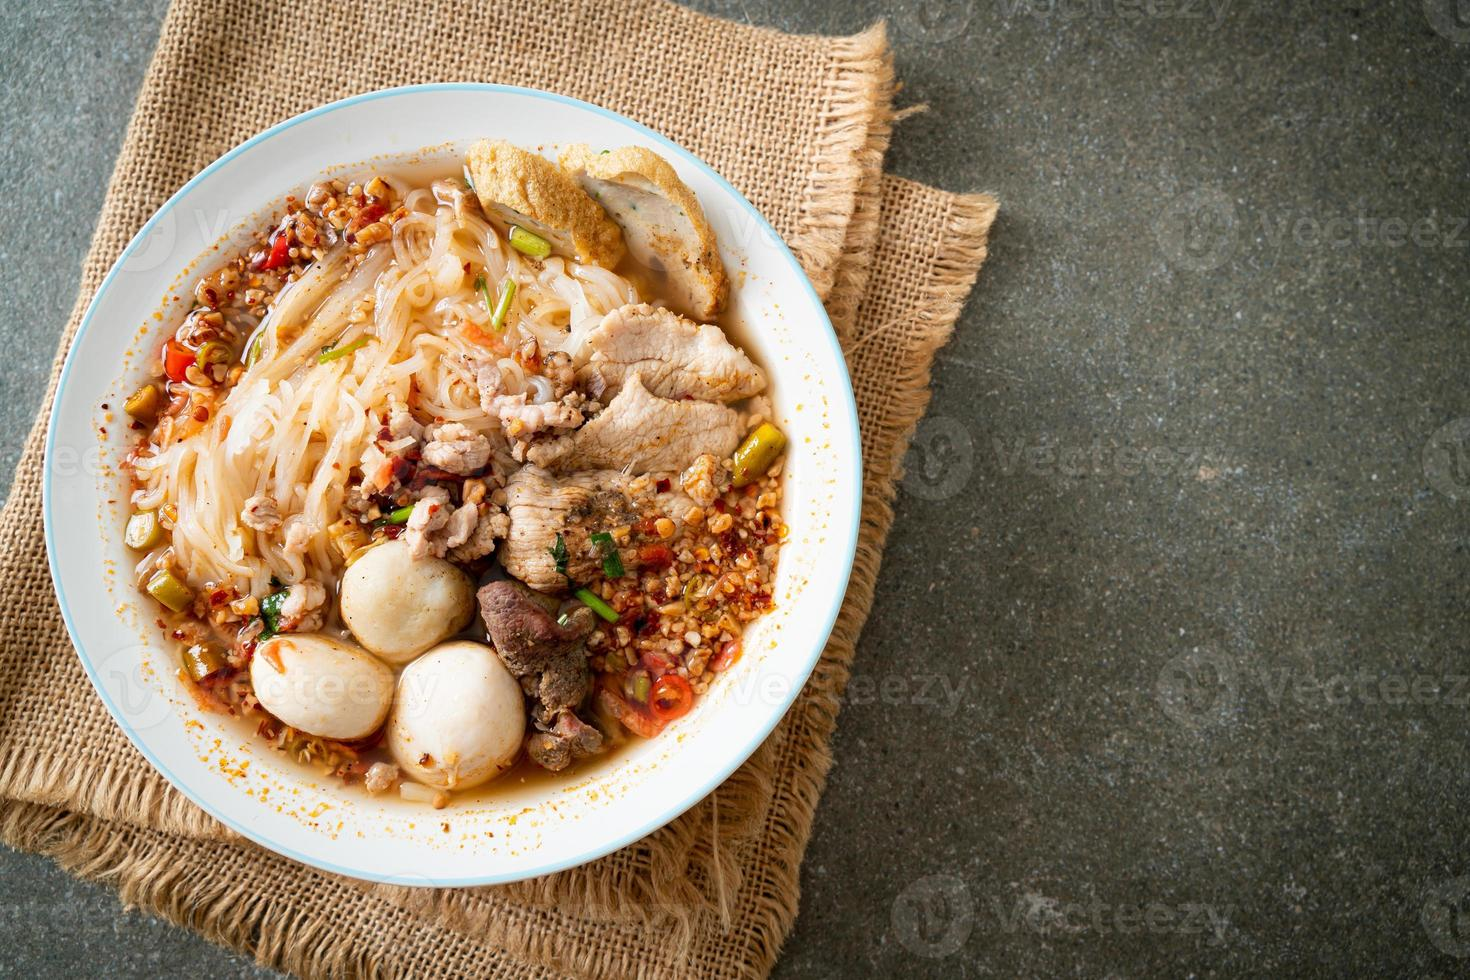 Noodles with pork and meatballs in spicy soup or Tom yum noodles in Asian style photo